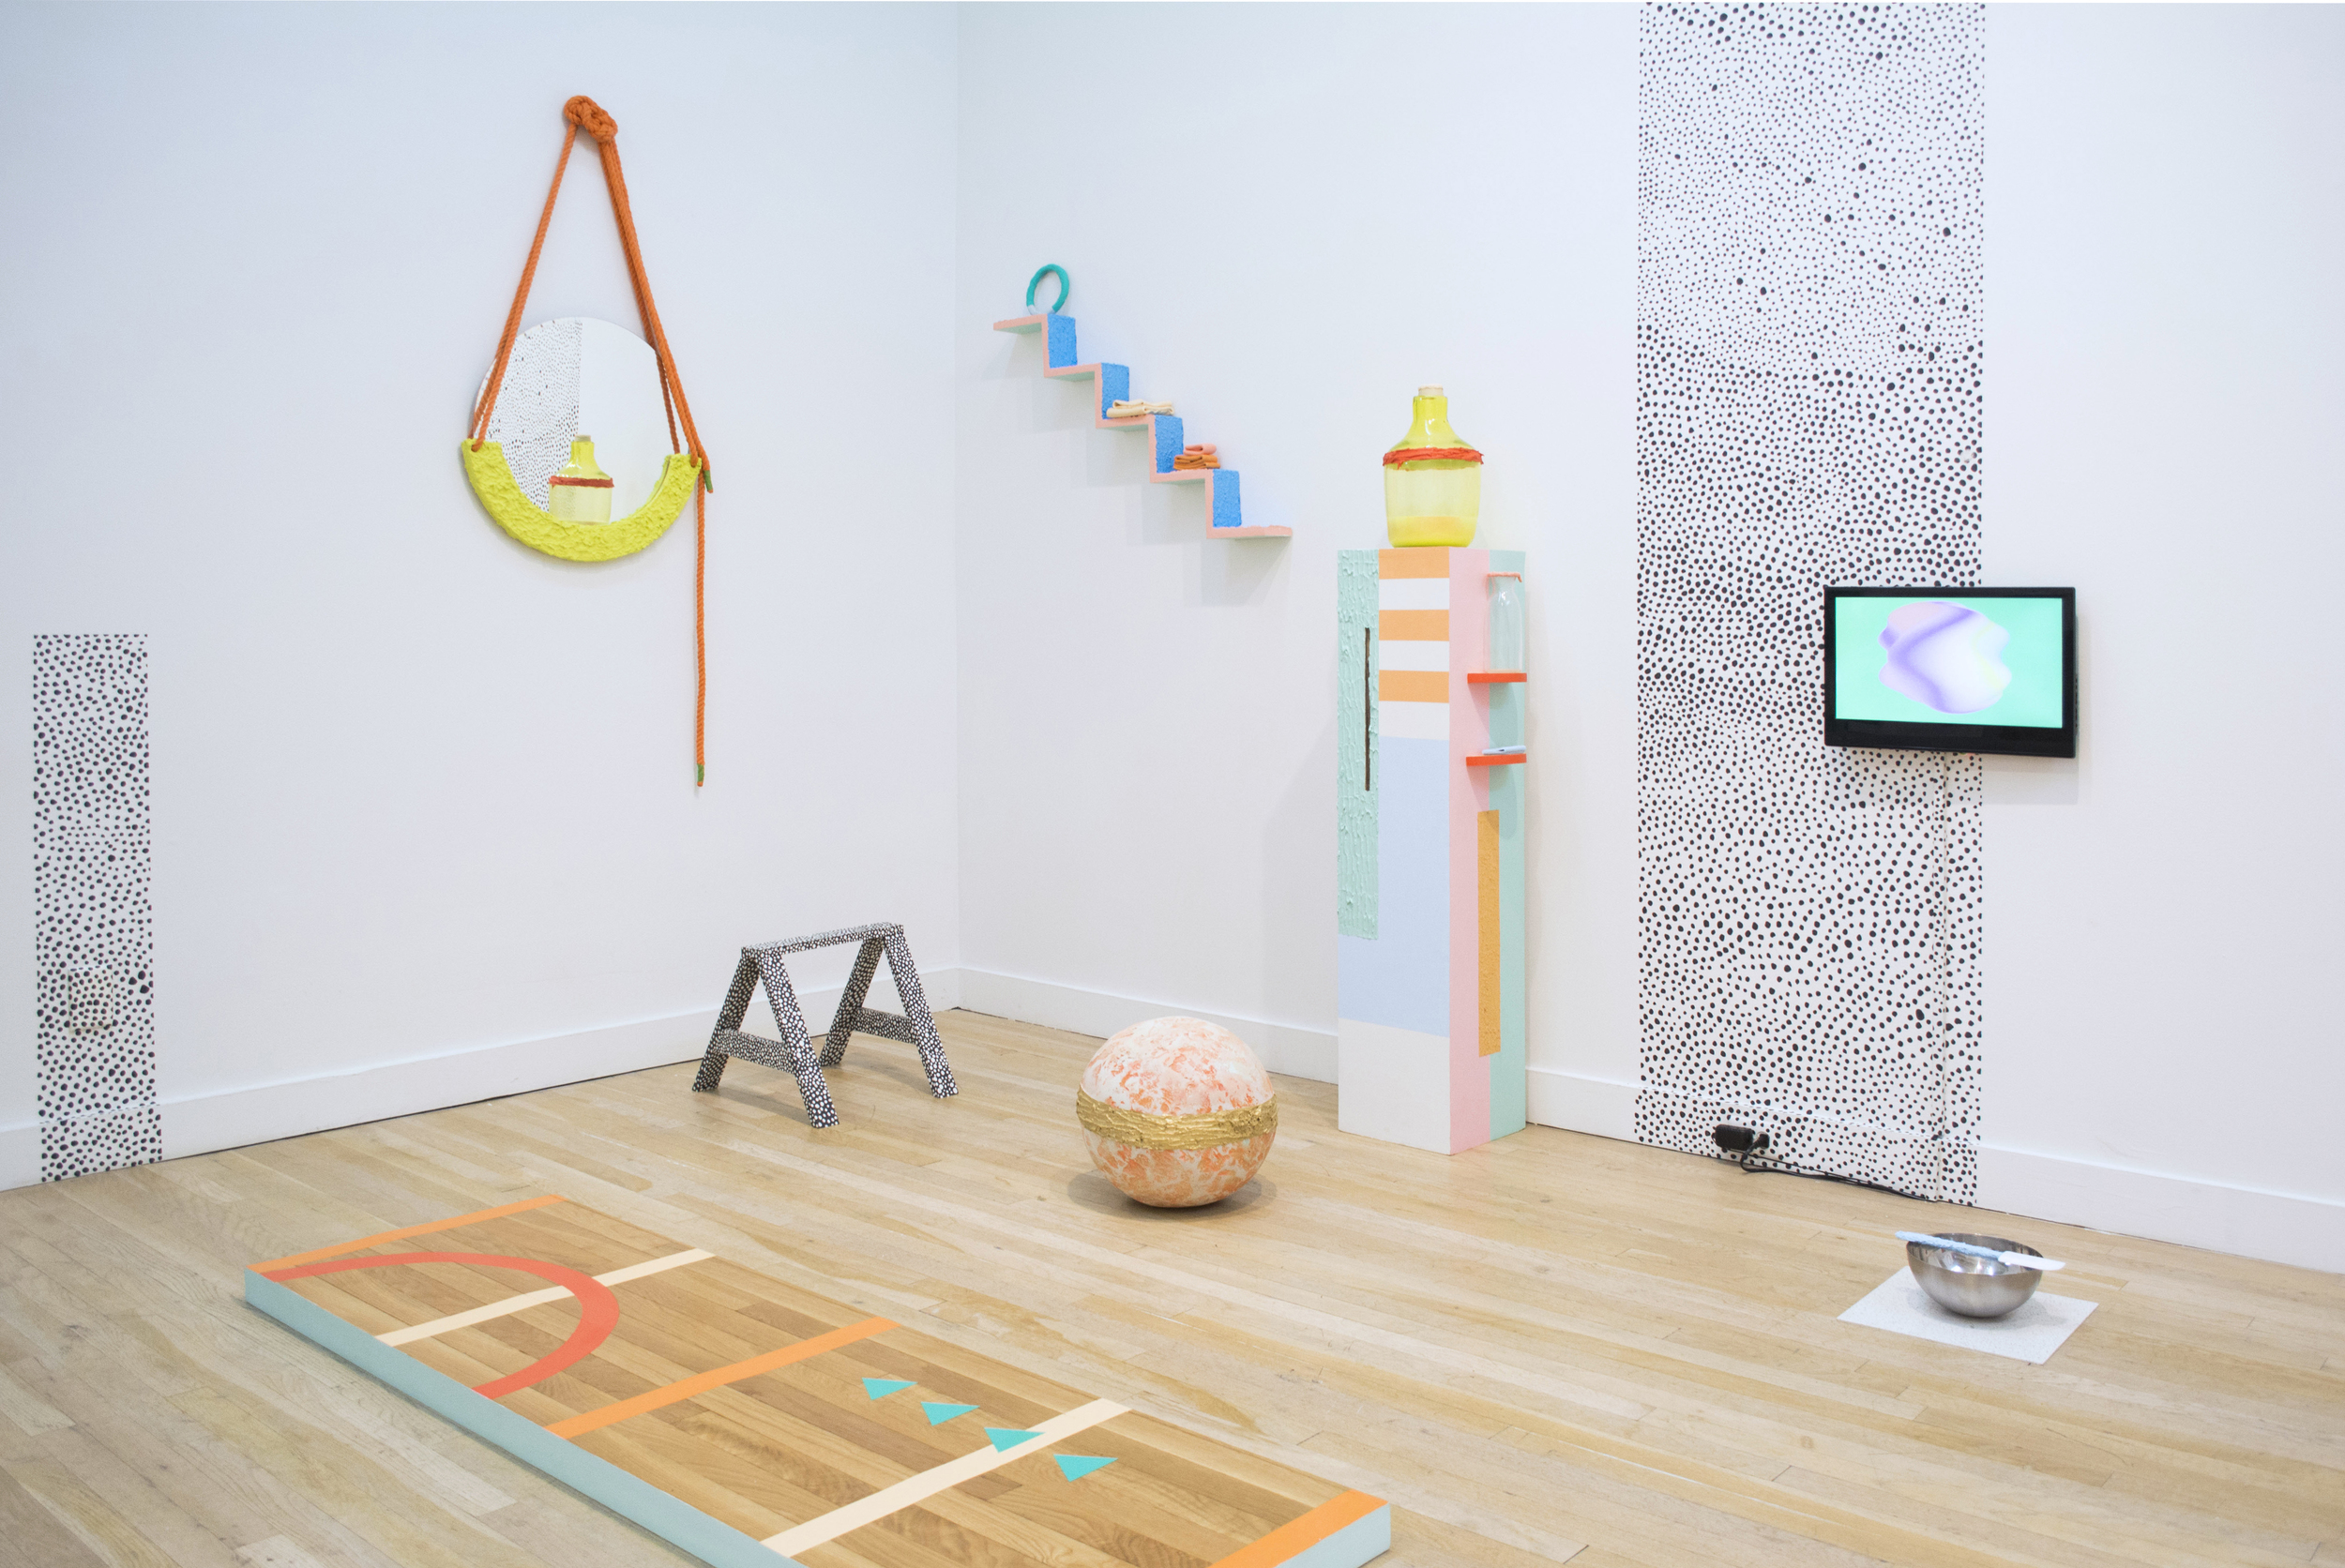 Rachel Debuque   Glisten , 2016  Site-specific performance installation including glass, bondo, clay, slime, rubber, sand, wood, paint, female bodybuilder, video animation,  Kickball , by Plakookee.Approximately 8' x 10' x 8'  Commissioned by CUE Art Foundation.